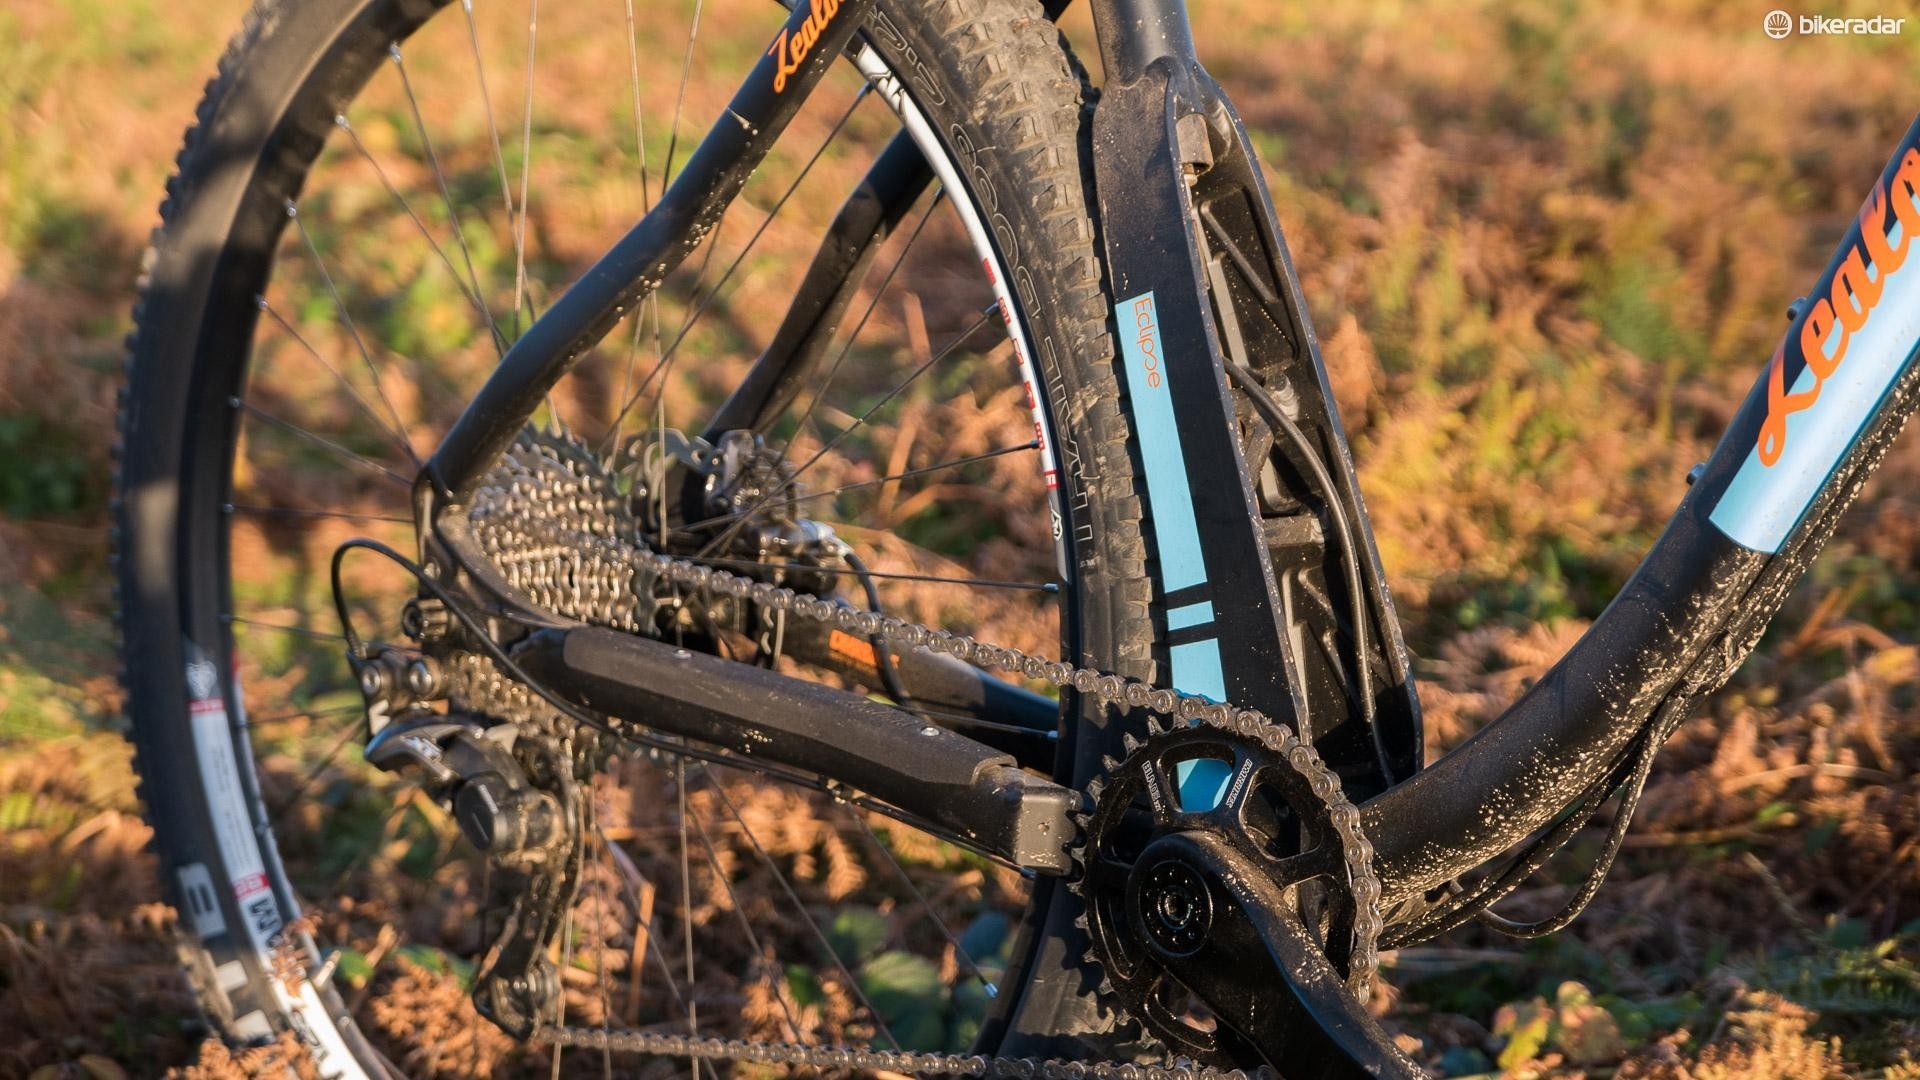 The innovative 'Eclipse' seat tube design allows for short chainstays and loads of clearance